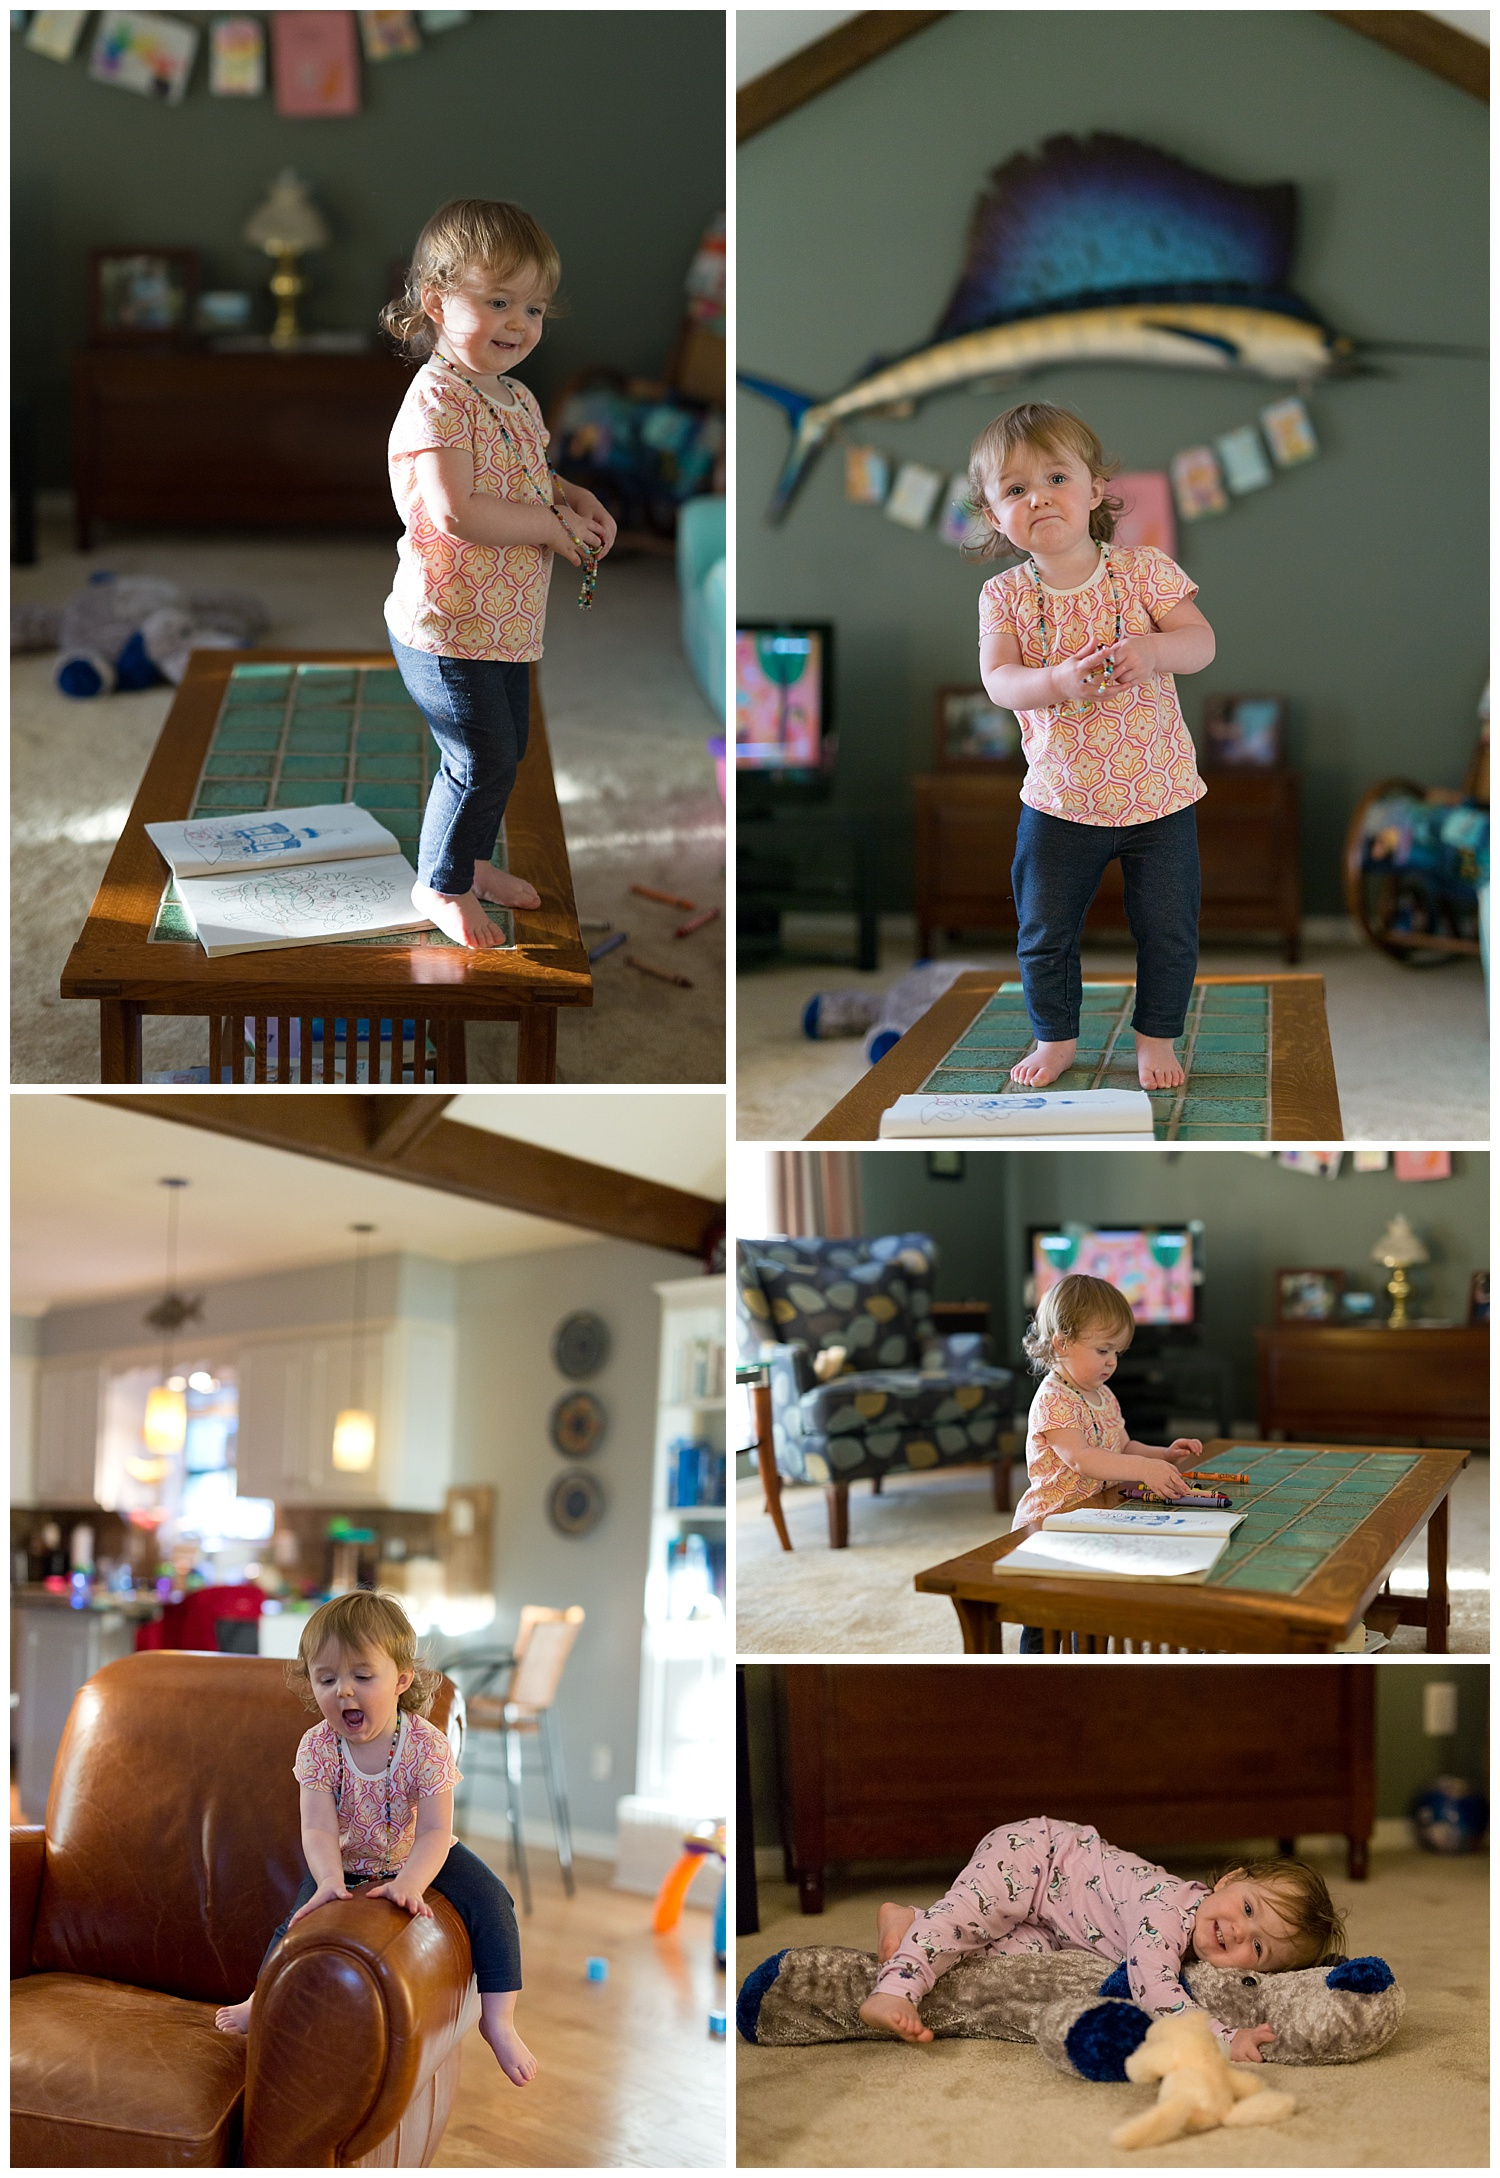 Ocean Springs lifestyle photographer - little girl playing in living room